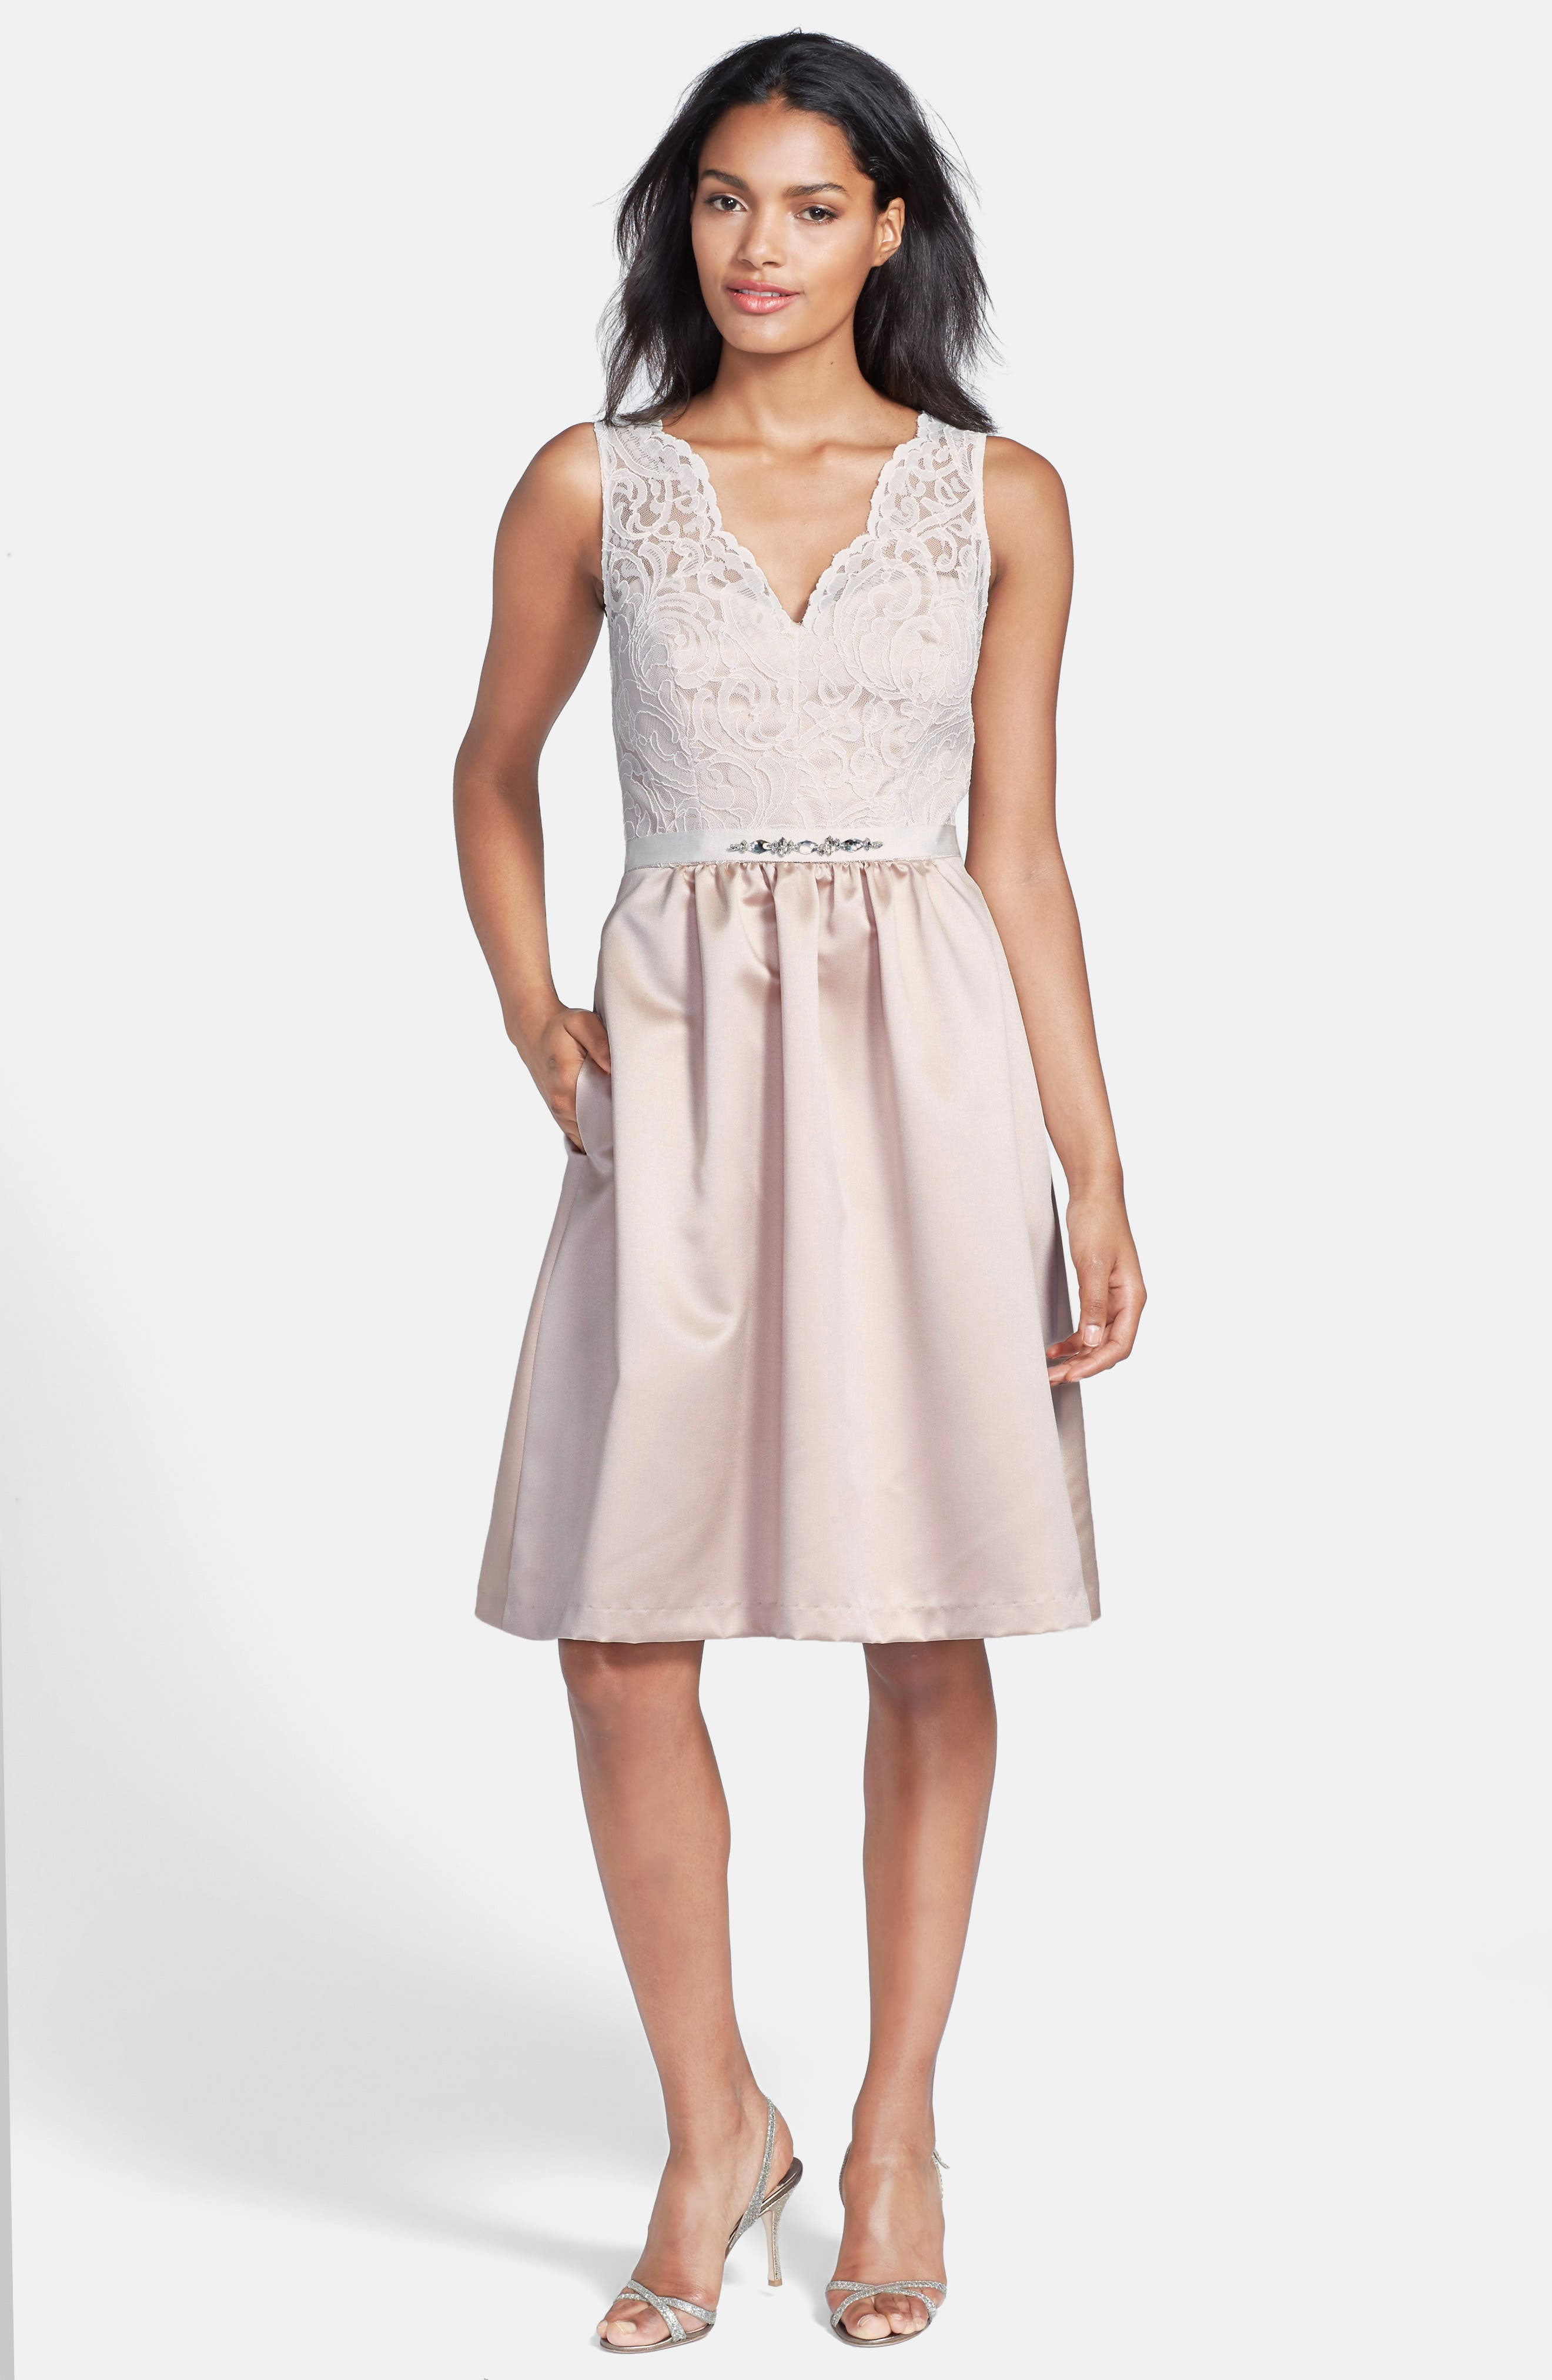 Embellished Lace with Satin Fit & Flare Dress,                             Alternate thumbnail 4, color,                             101